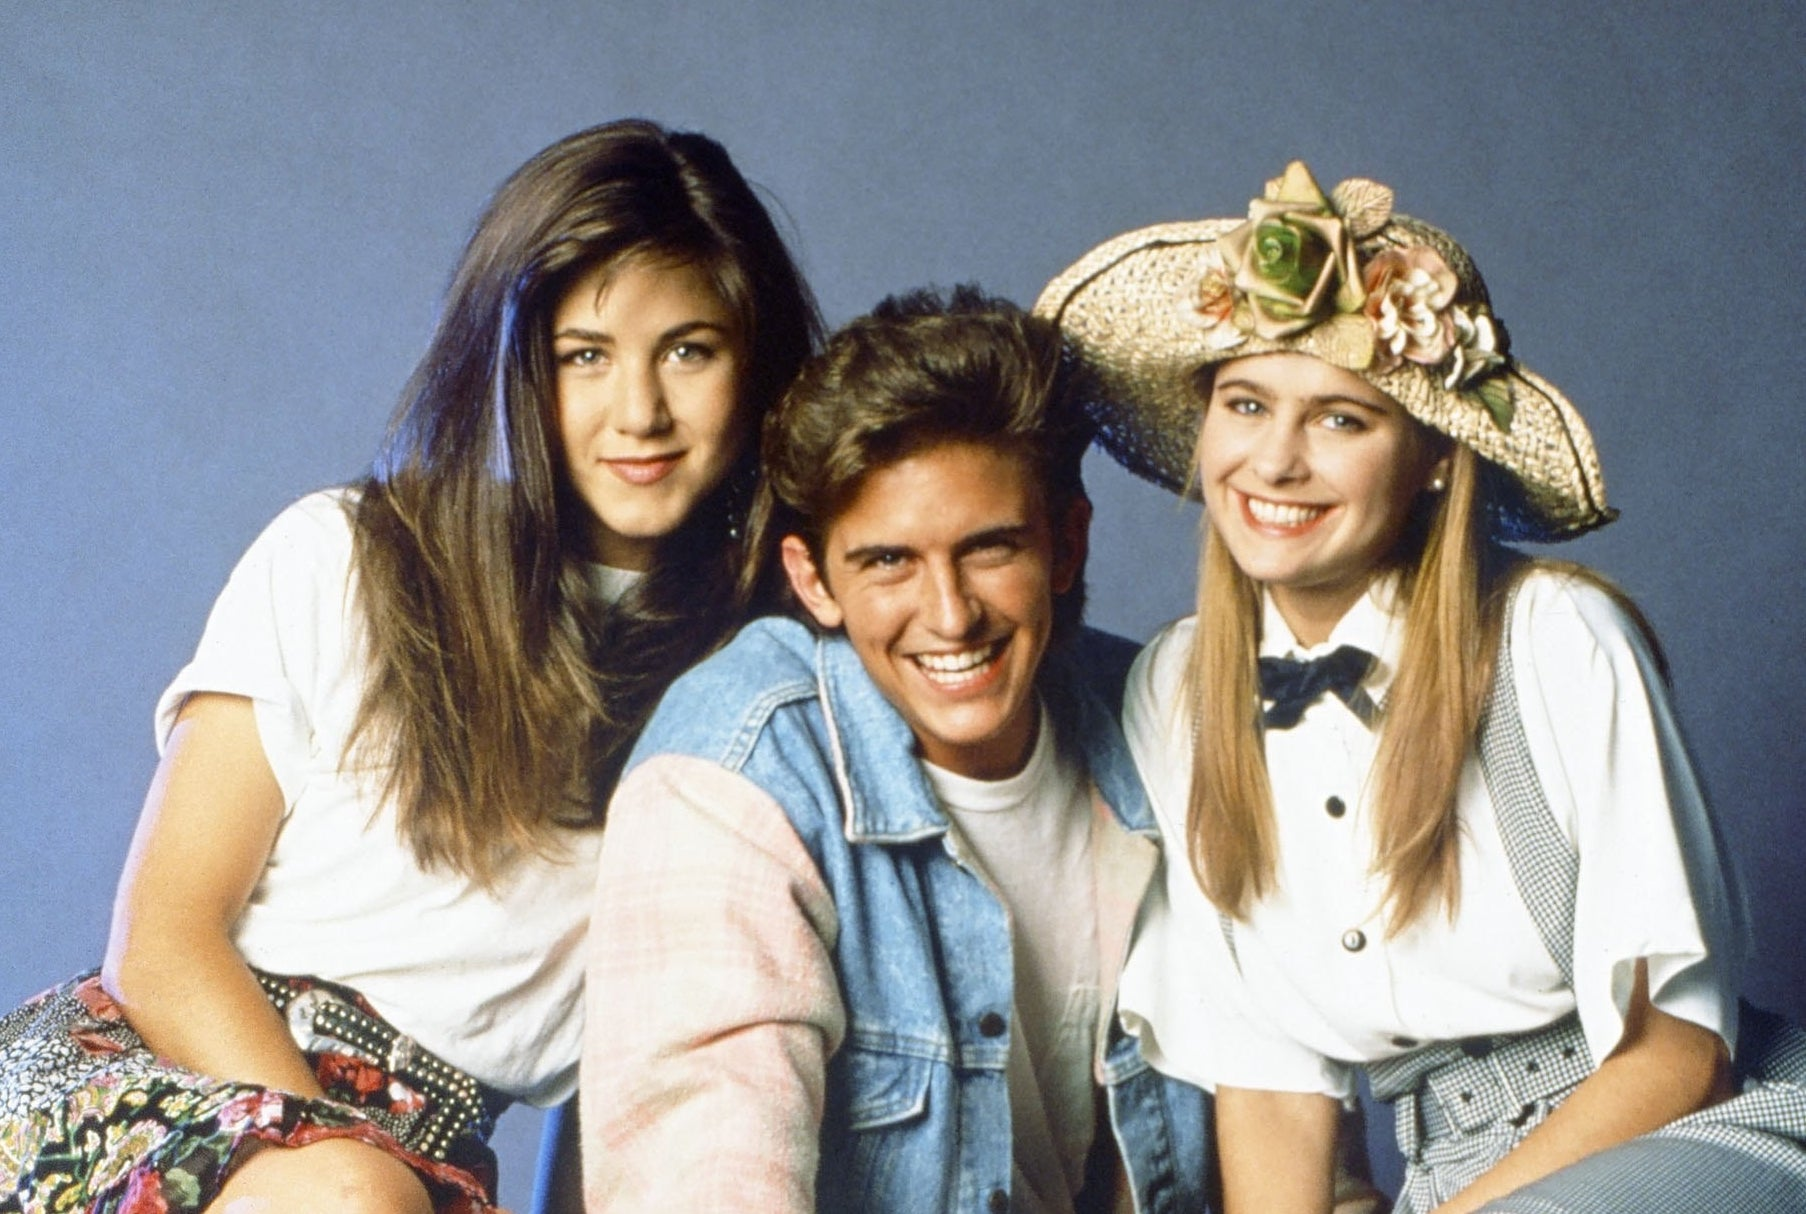 Jennifer Aniston as Jeannie Bueller, Charlie Schlatter as Ferris Bueller, Ami Dolenz as Sloan Peterson sitting on a white limo